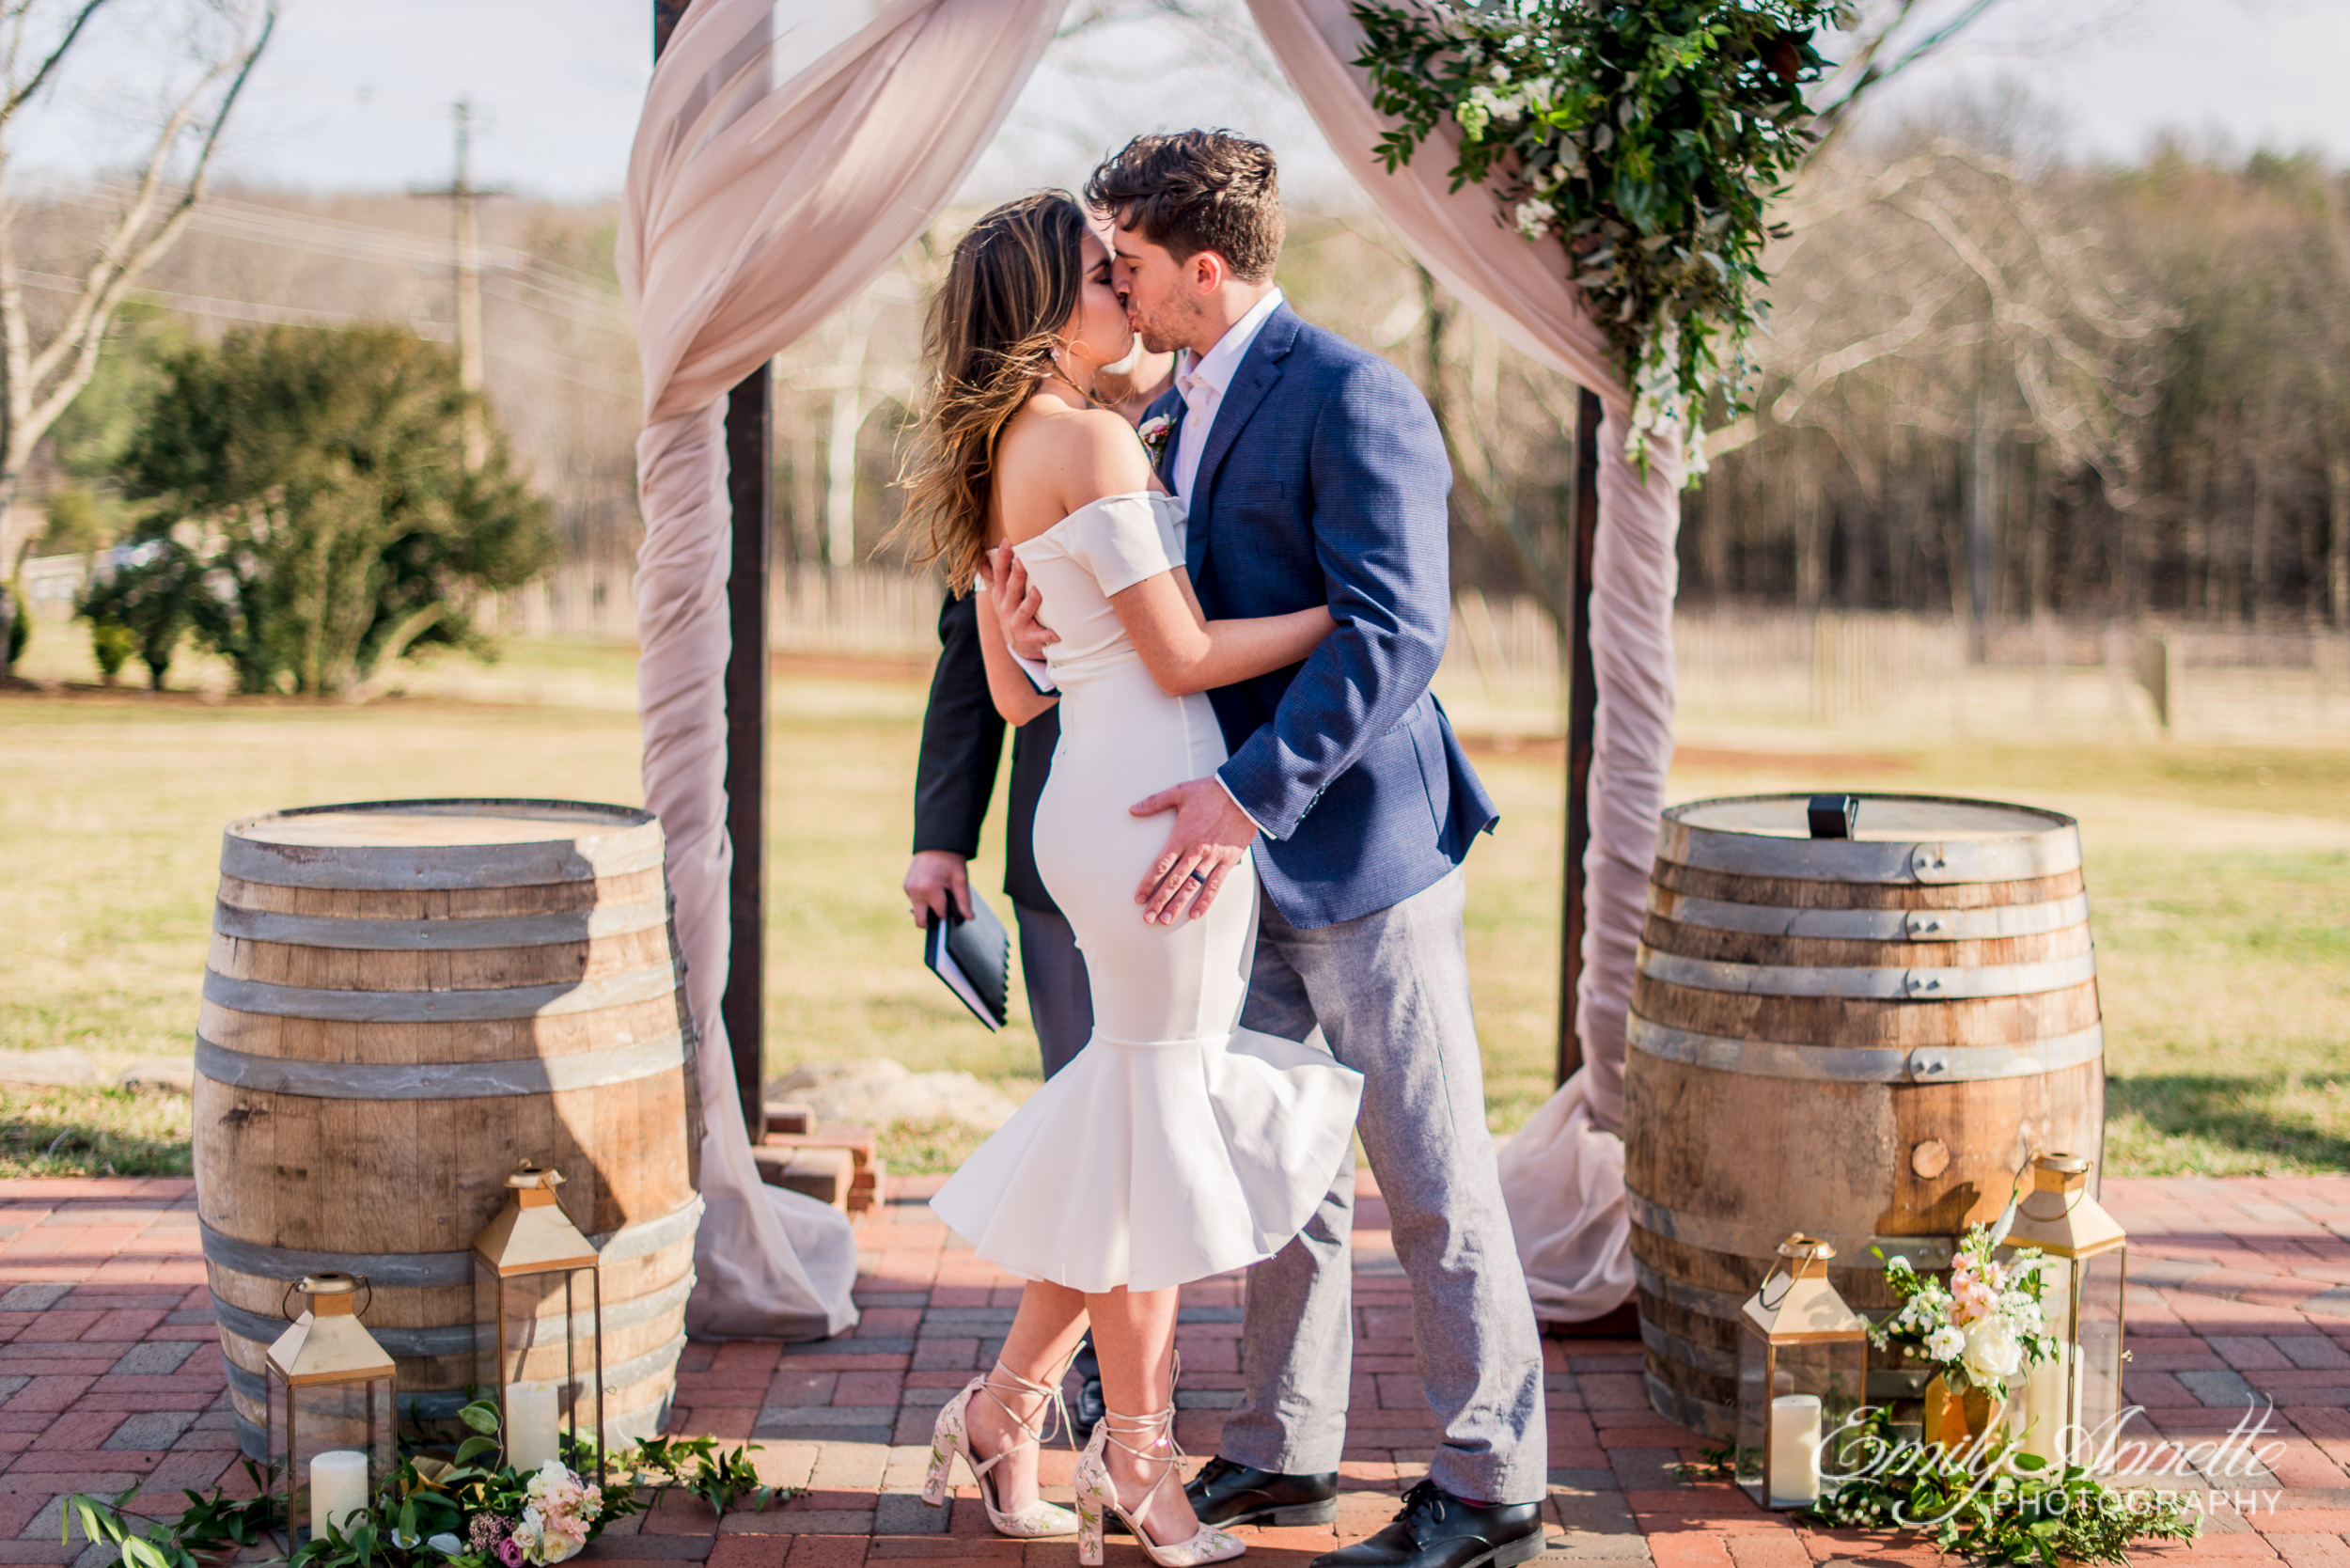 The first kiss as husband and wife during their wedding ceremony at Fleetwood Farm Winery in Leesburg, Virginia